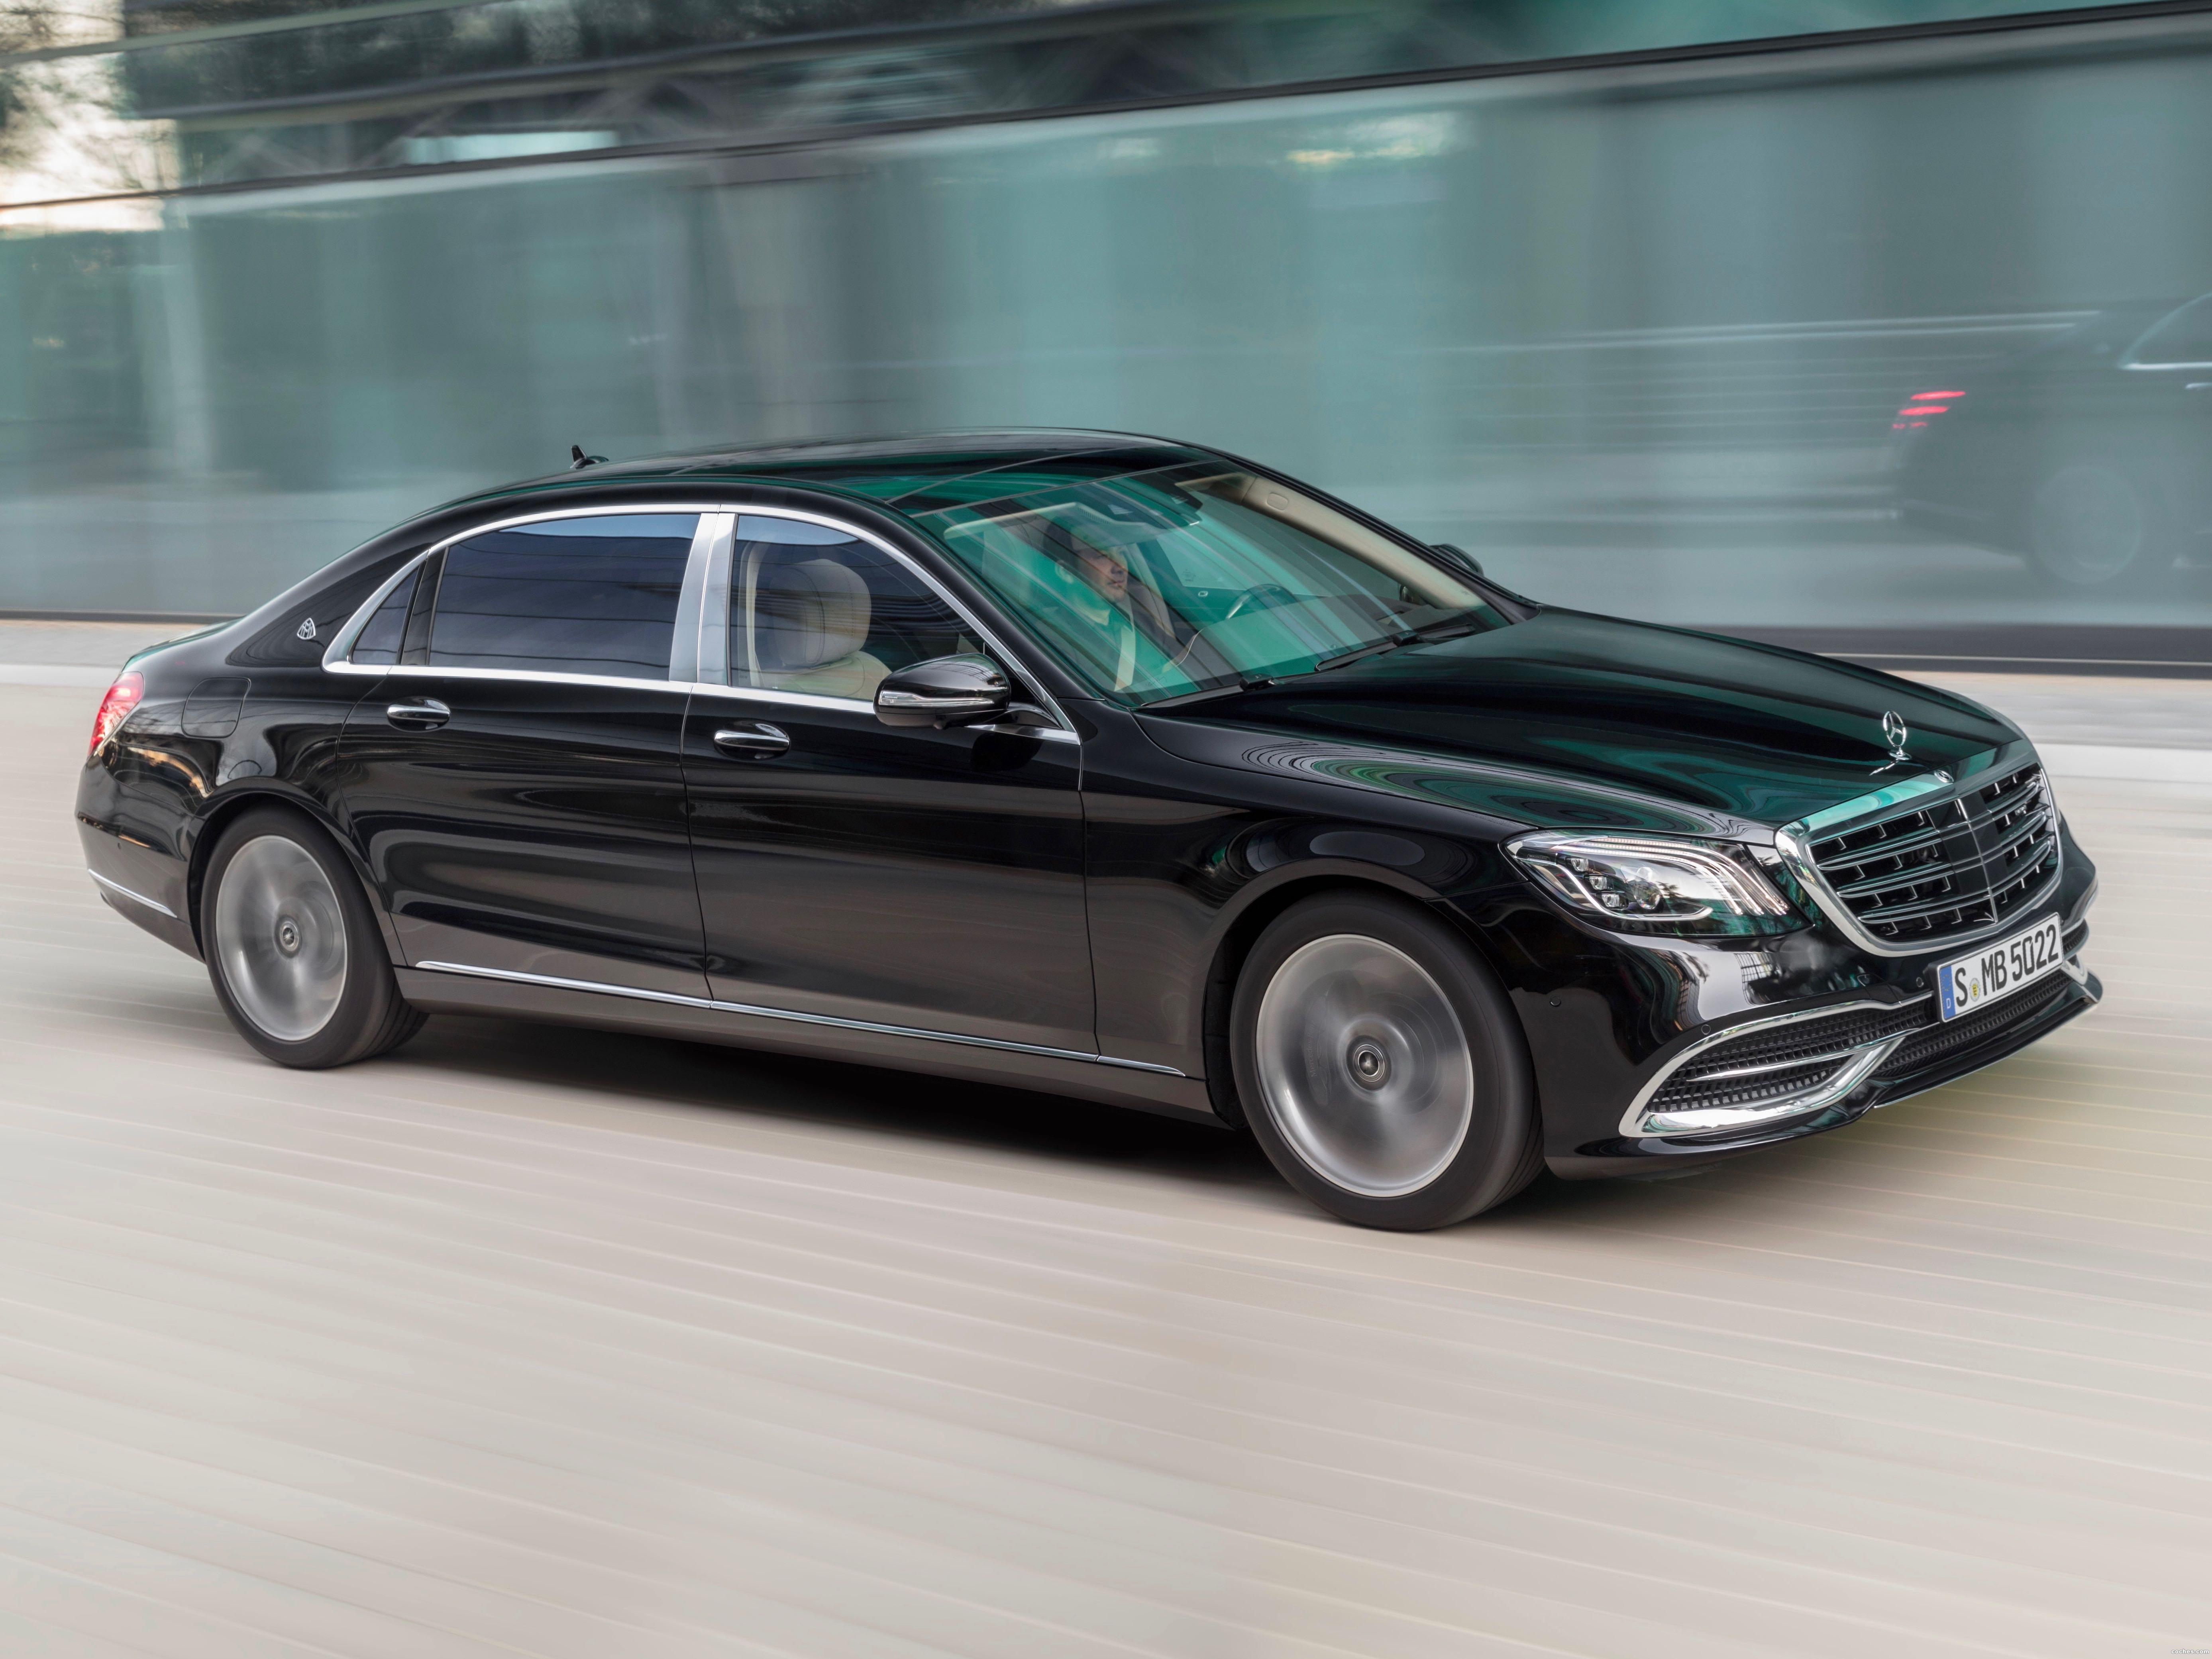 Foto 0 de Mercedes Maybach Clase S S 560 4MATIC 2017